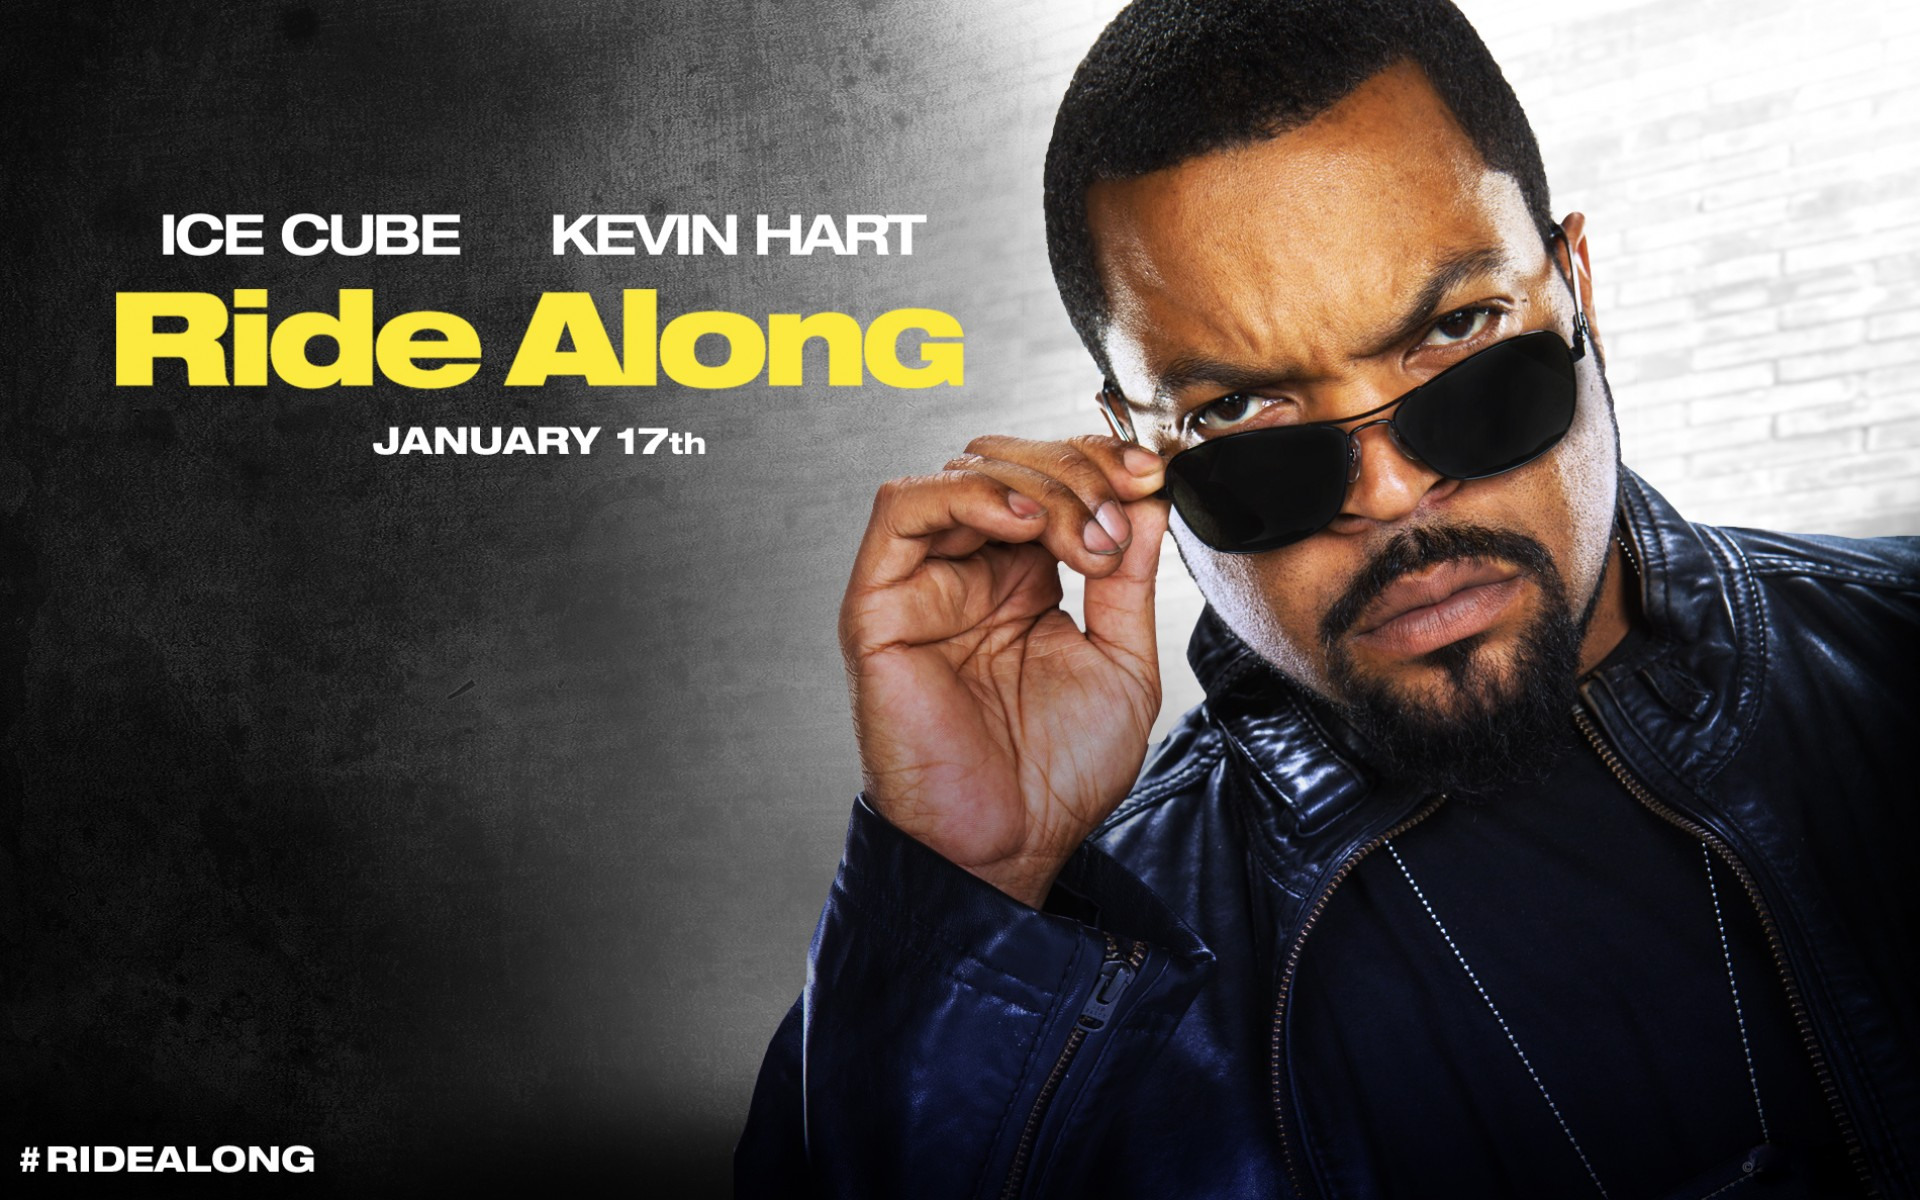 Ride Along (2014) Ice Cube - Wallpaper, High Definition ...